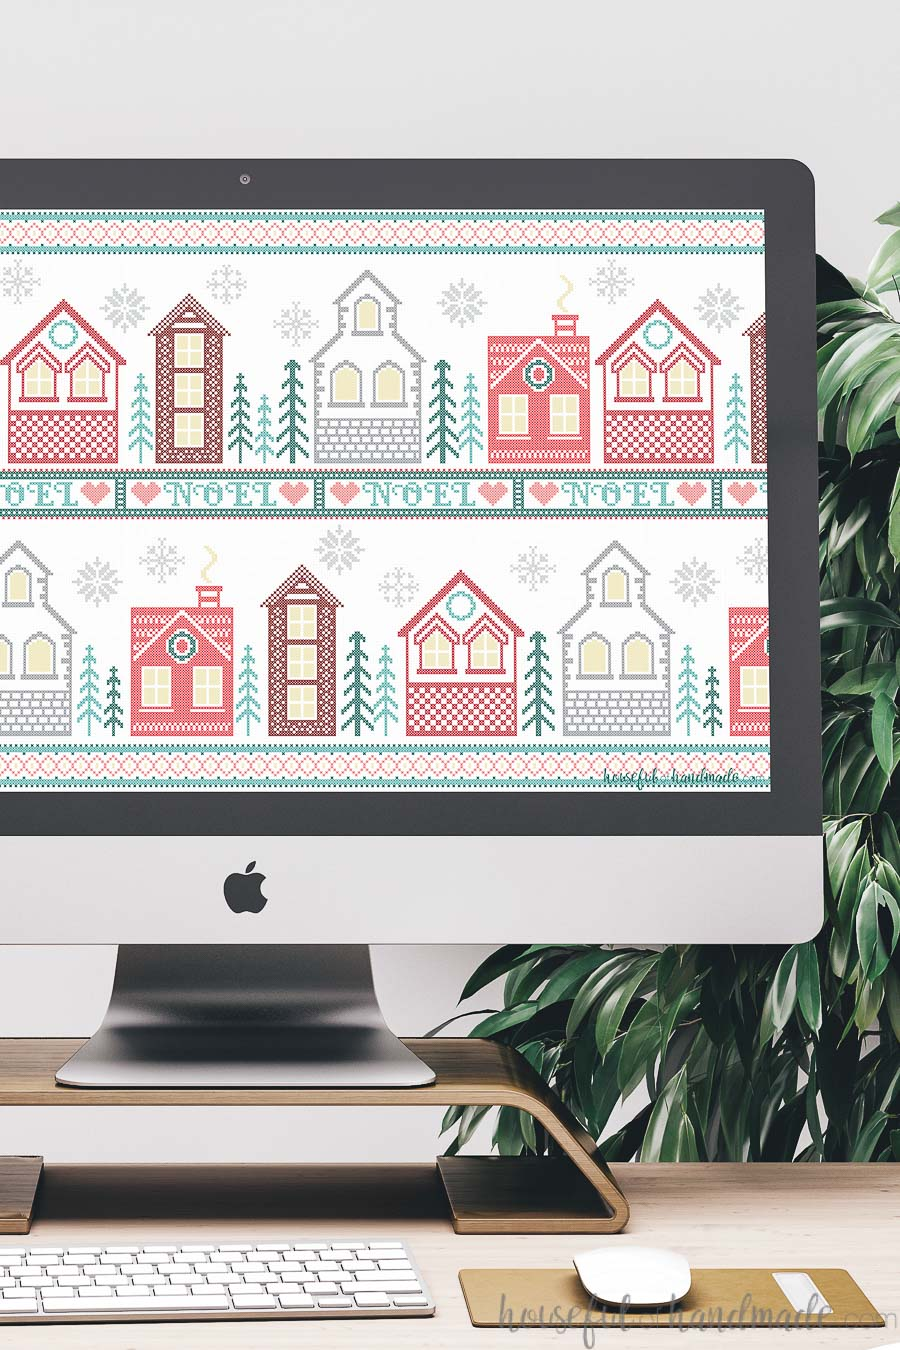 Desktop computer with the Christmas themed free digital background on it.